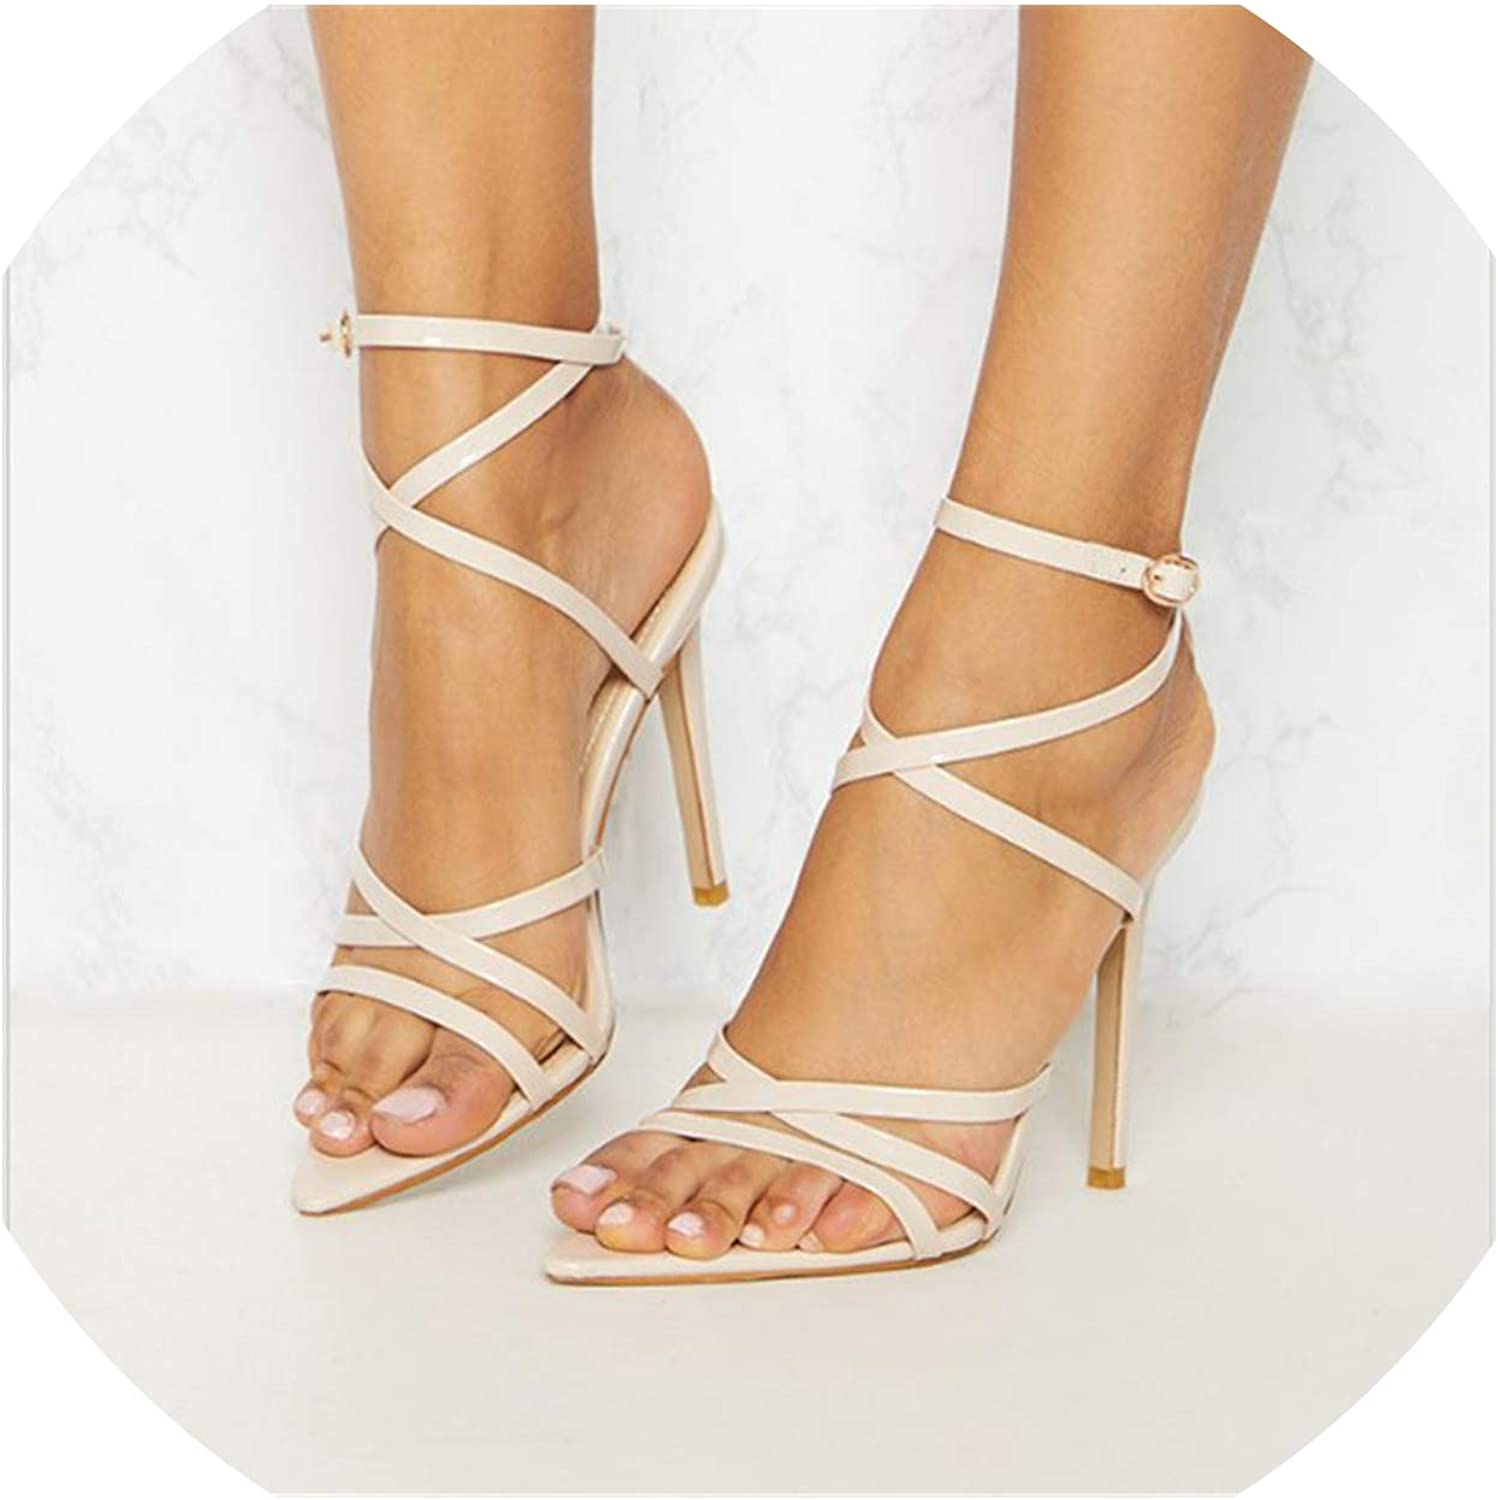 Sandals Women Buckle high Heels shoes Ladies Prom Wedding shoes Woman Summer shoes